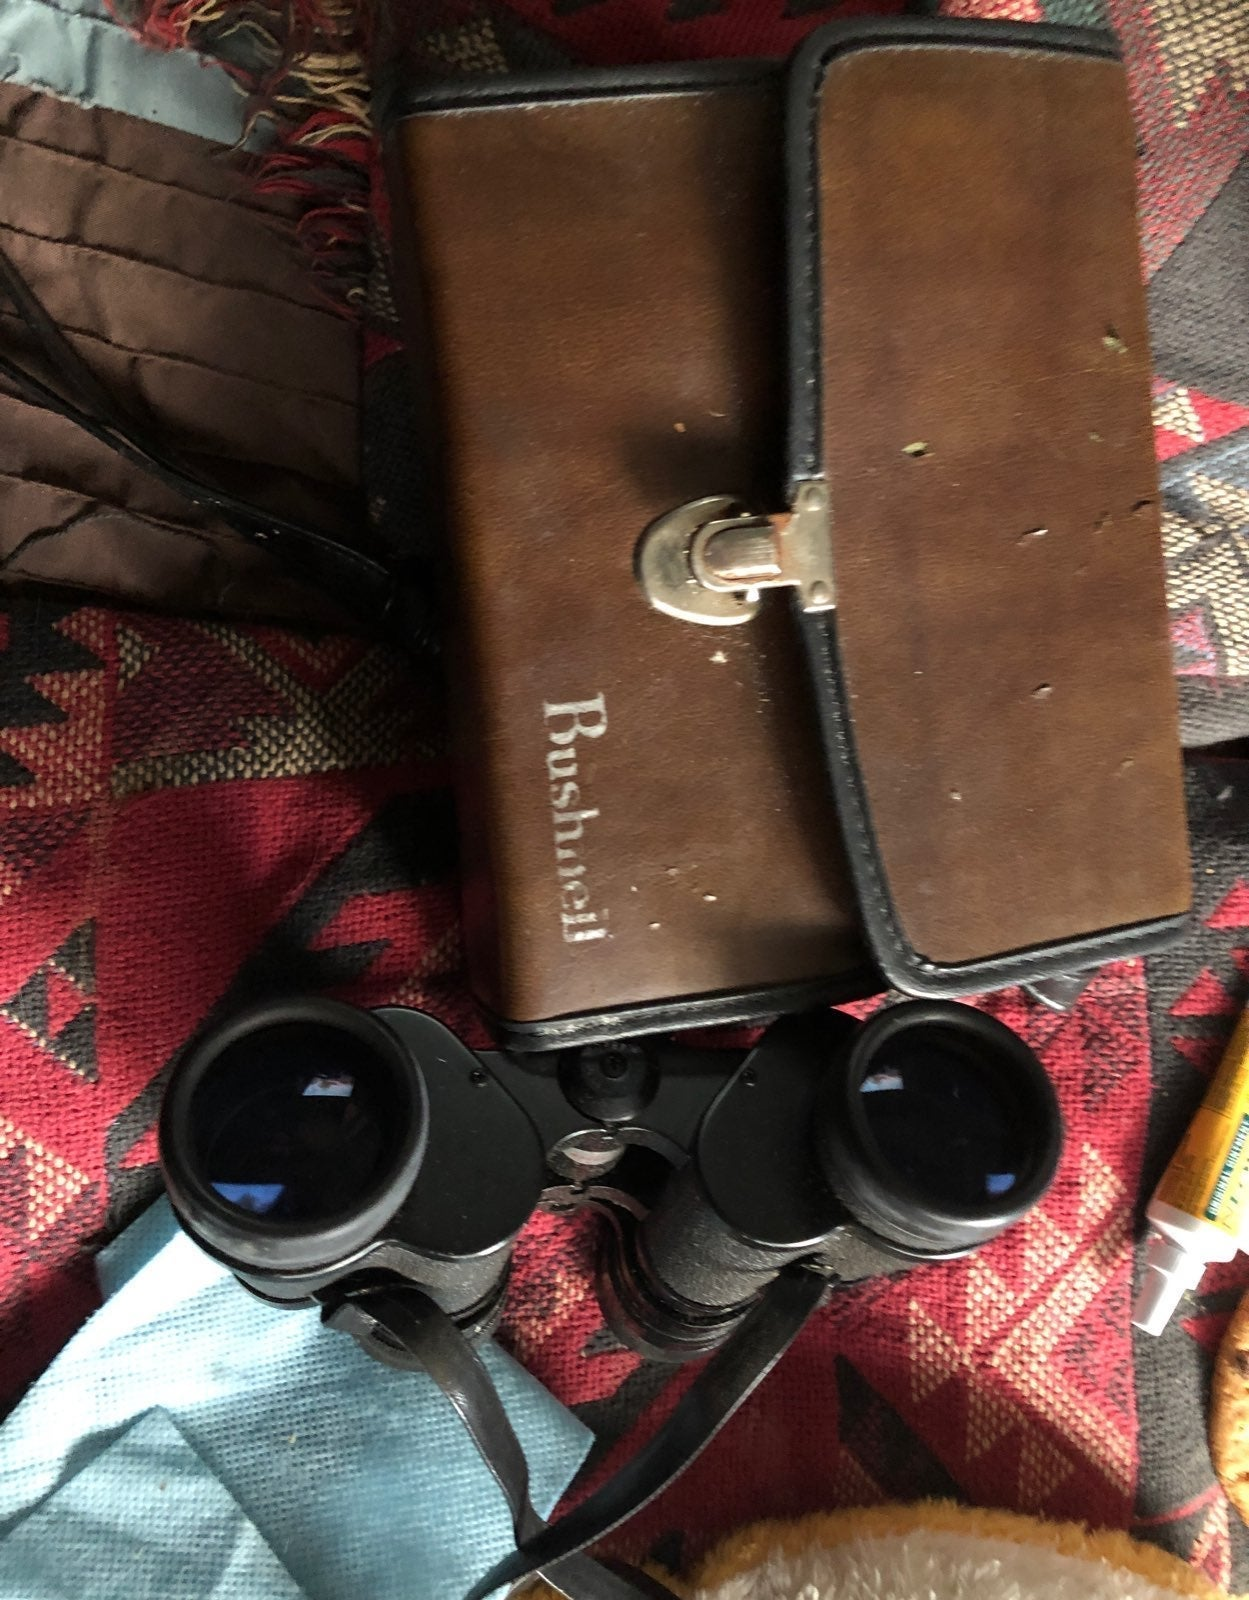 1970s binoculars and case